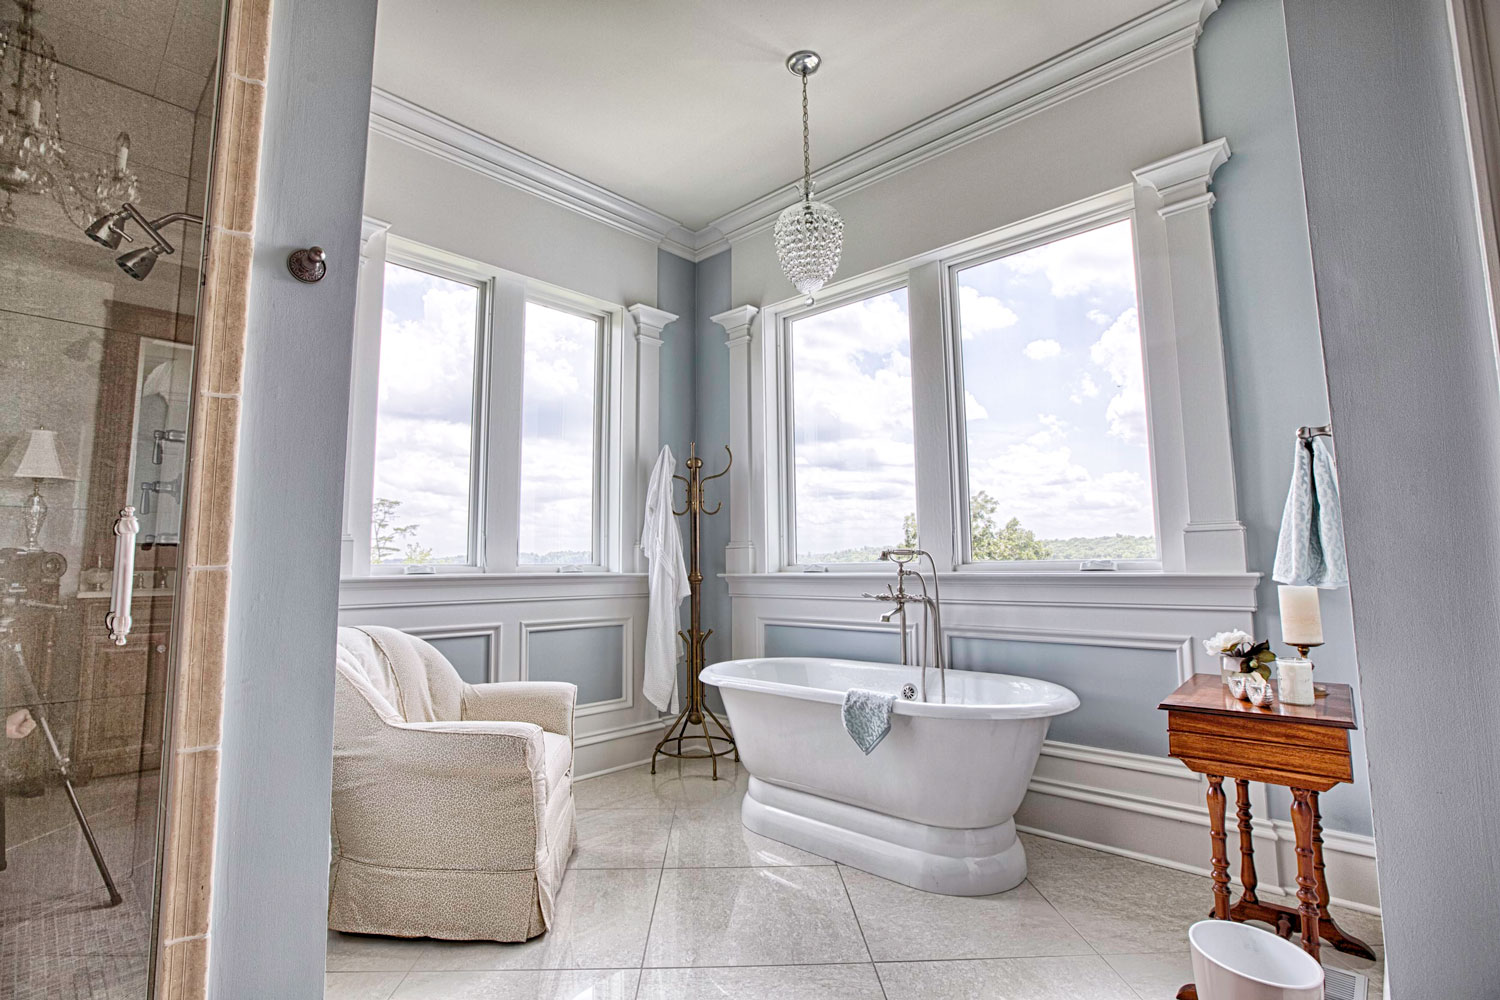 When remodeling a bath, talk to our design experts about a properly sized exhaust fan for bathroom ventilation.